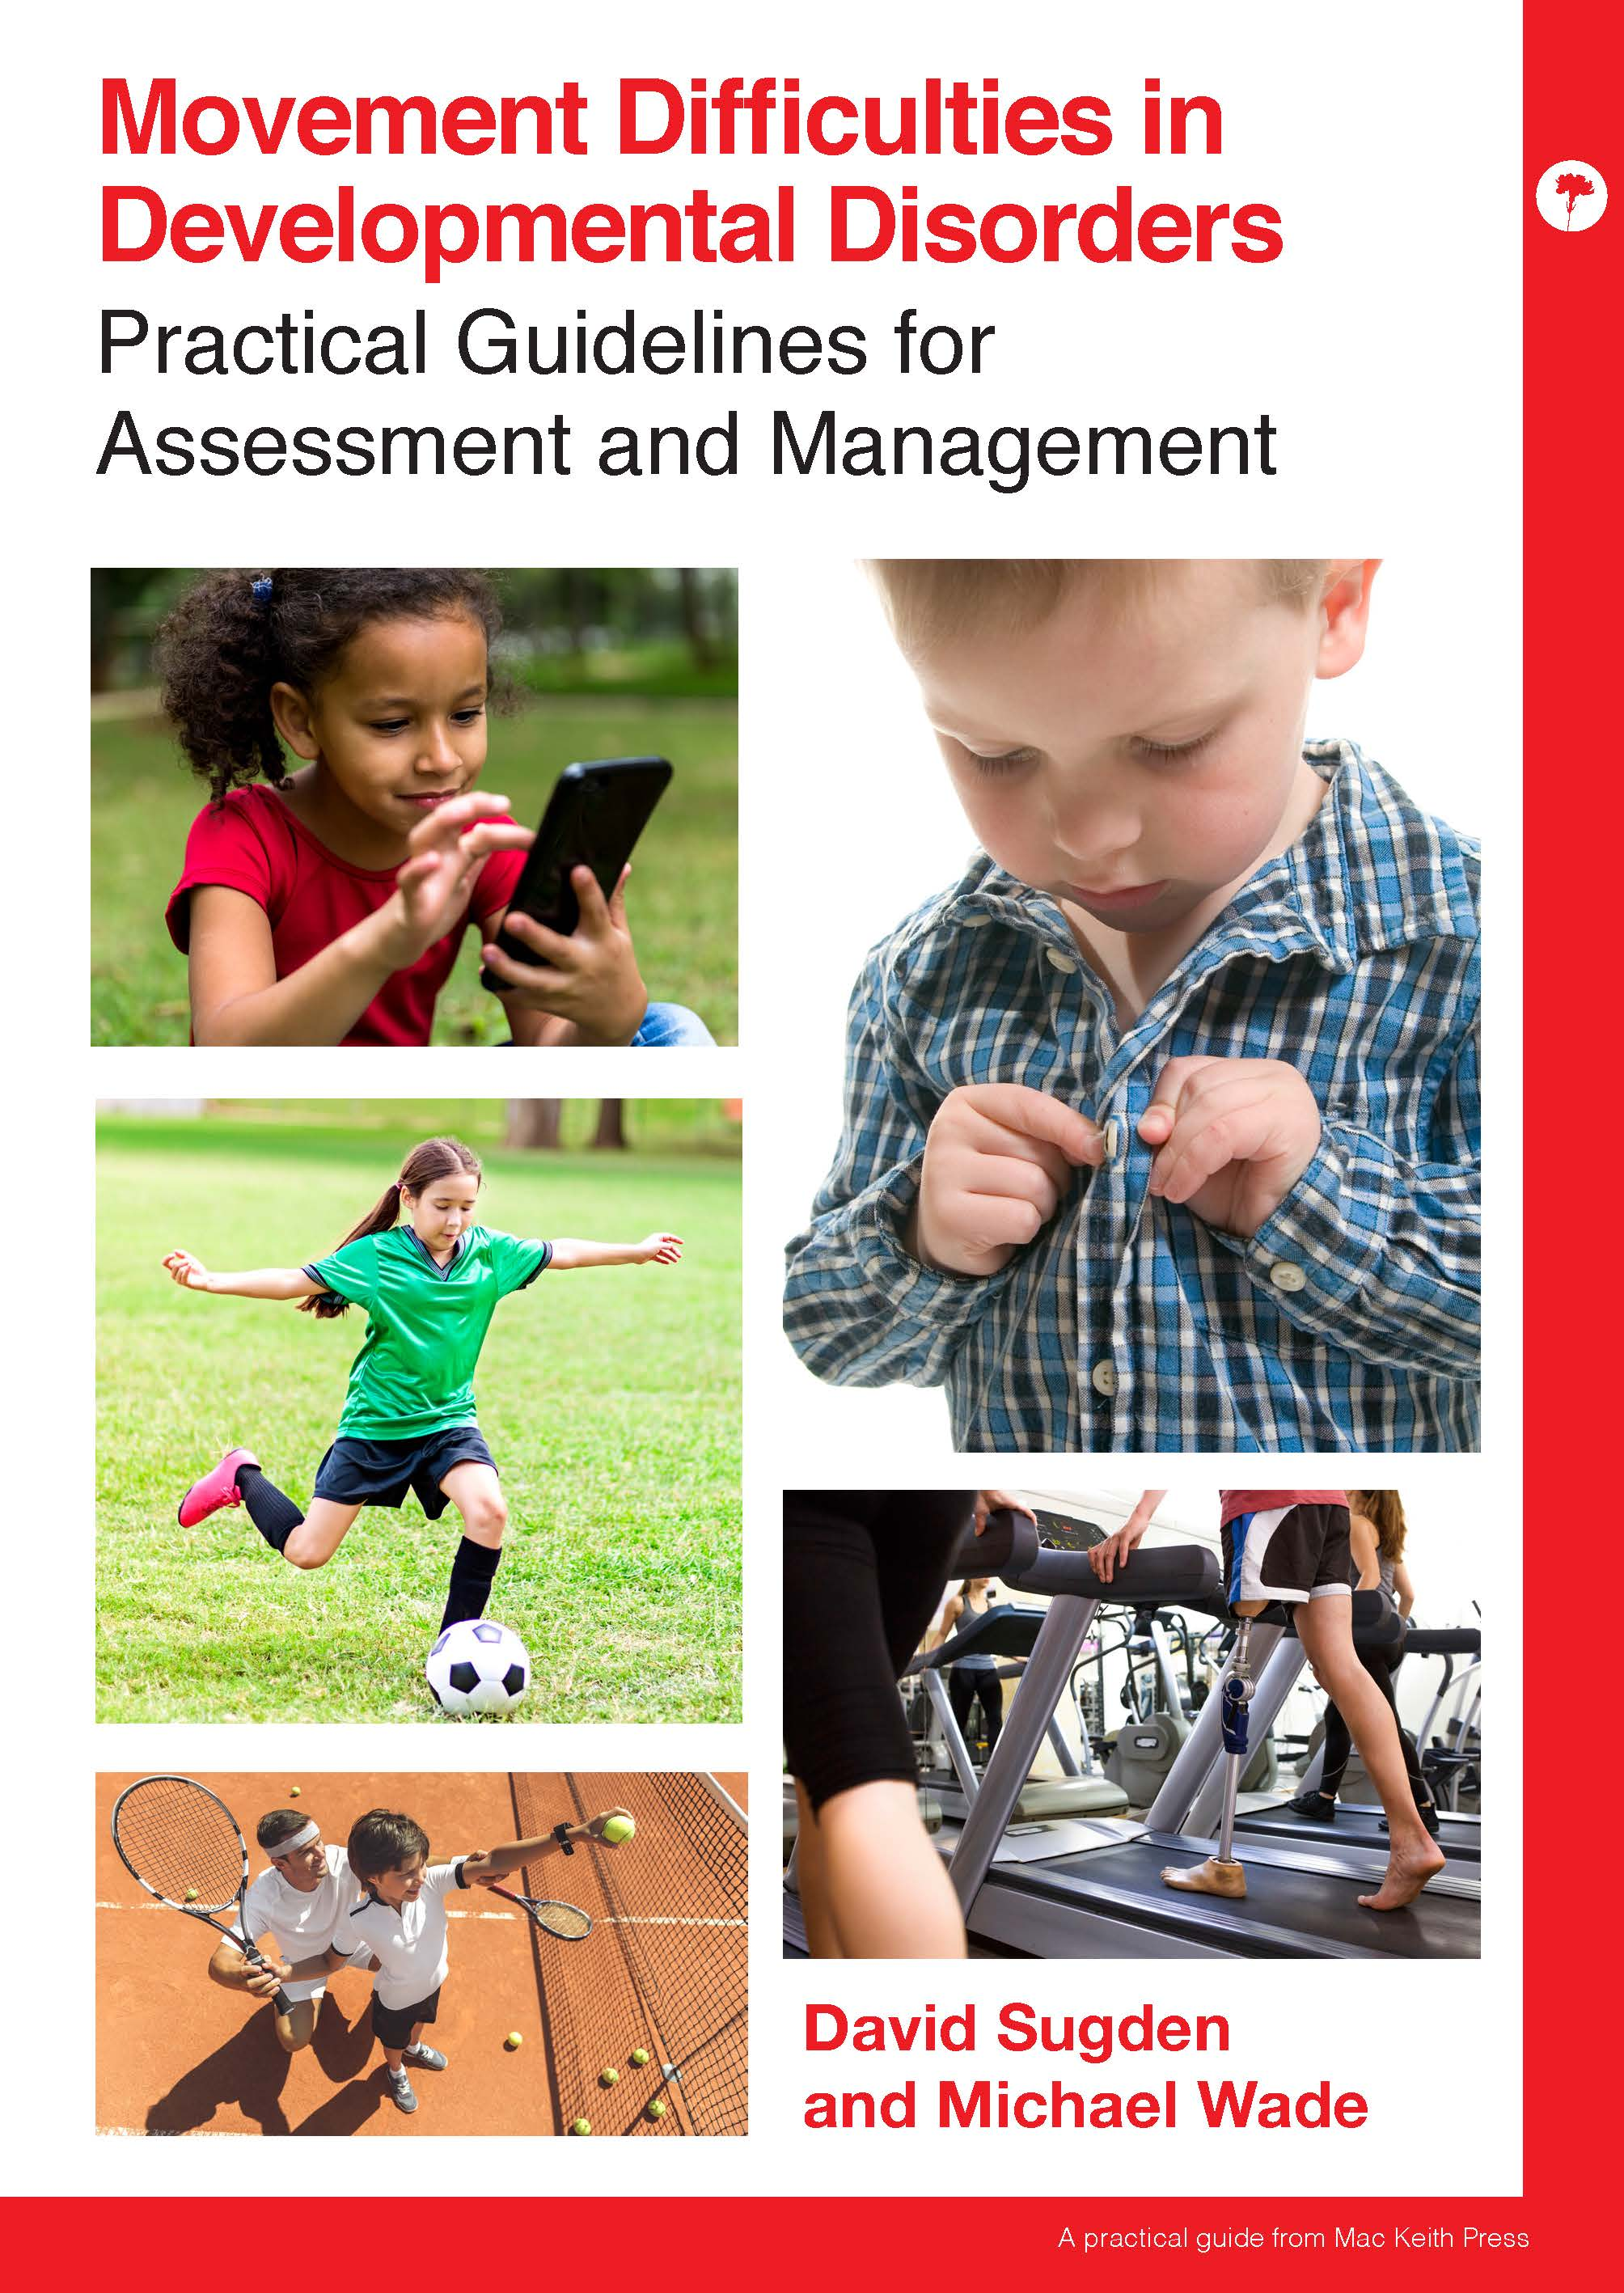 Movement Difficulties in Developmental Disorders: Practical Guidelines for Assessment and Management